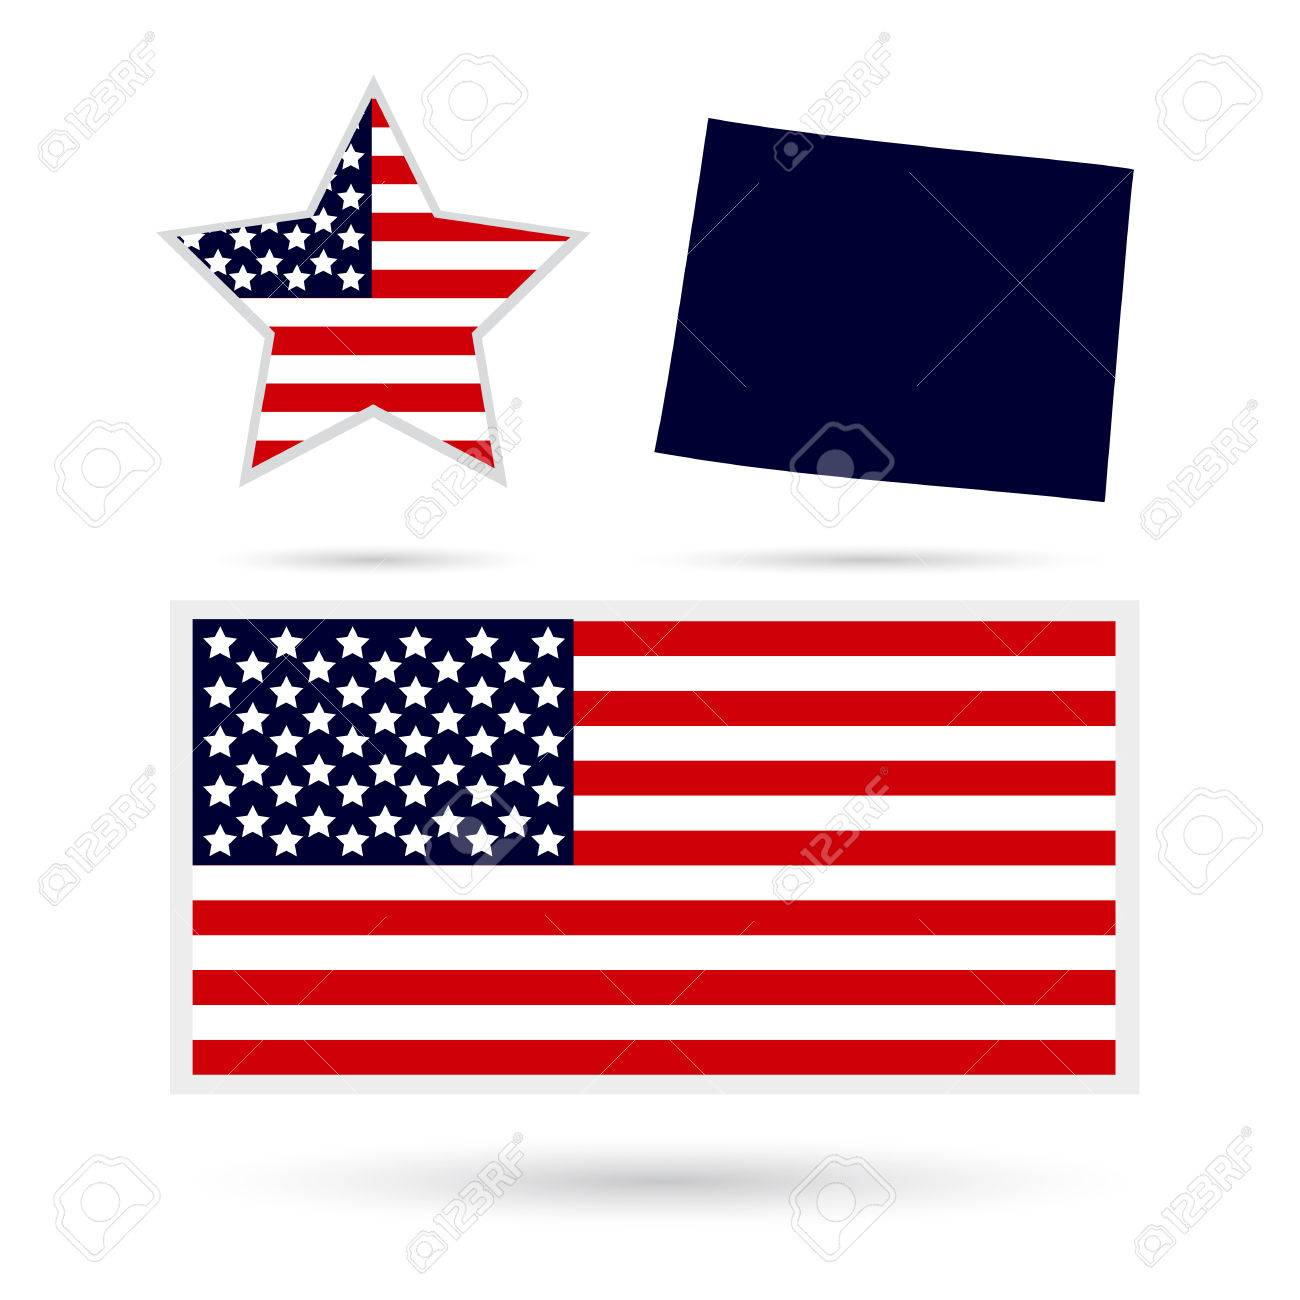 Us State On The Us Map Wyoming On A White Background American - American-flag-us-map